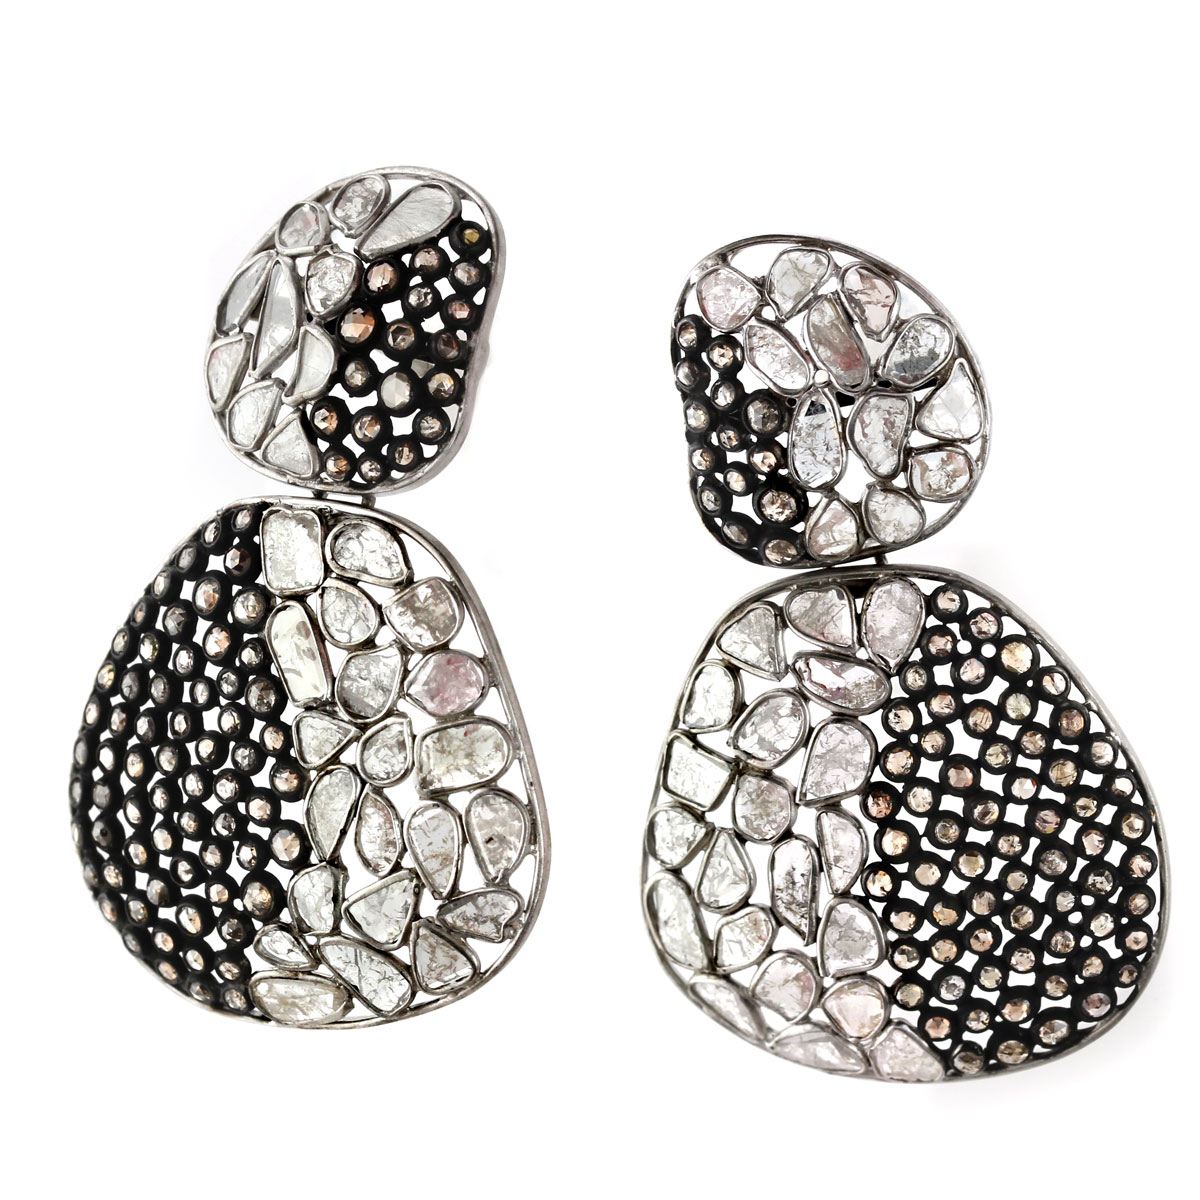 341250-Raw Diamond Earrings